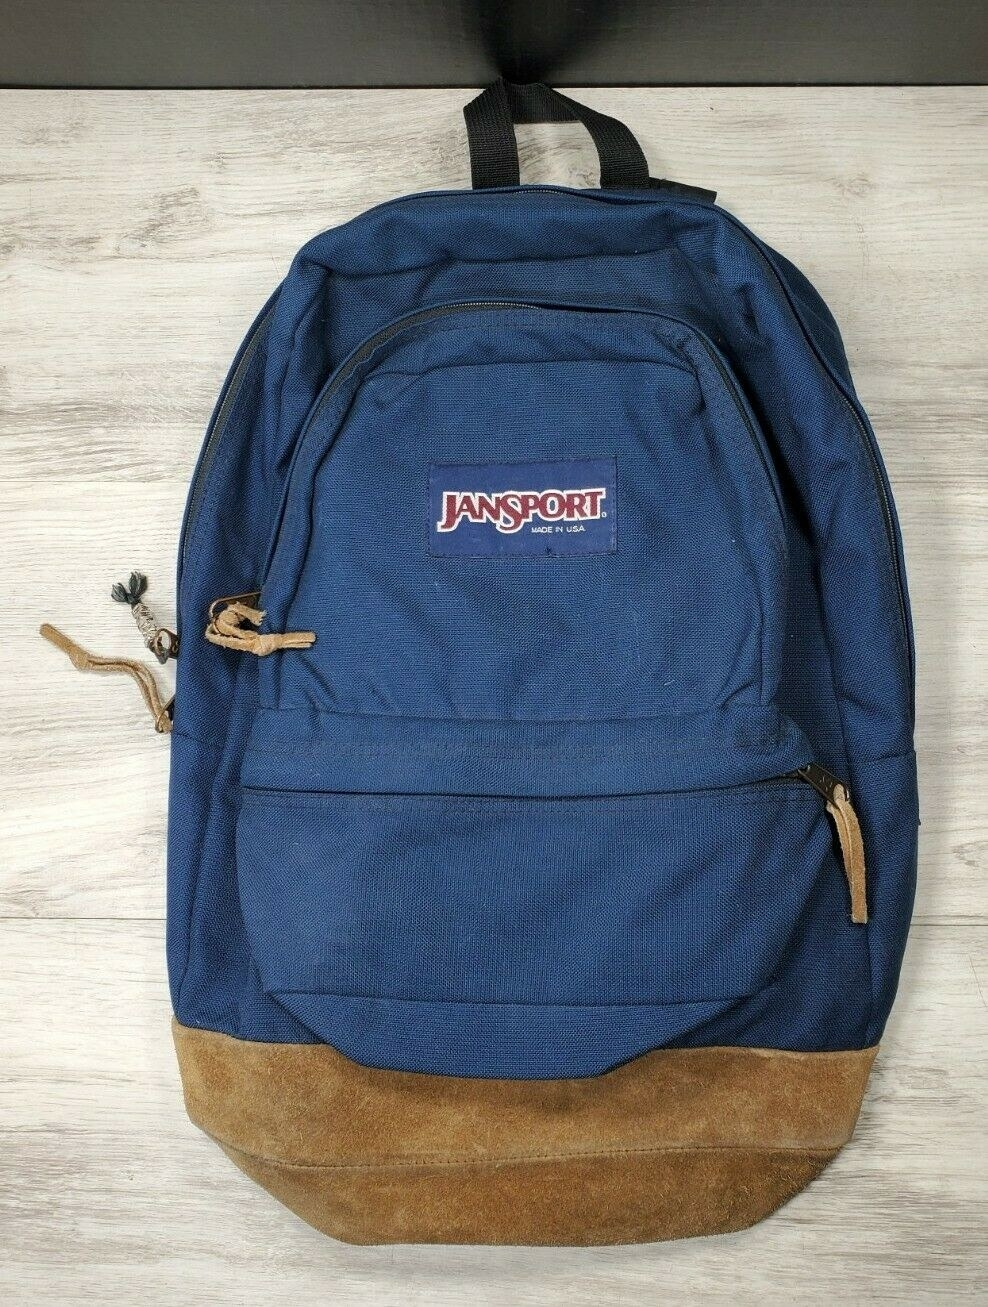 A navy JanSport backpack with a suede bottom